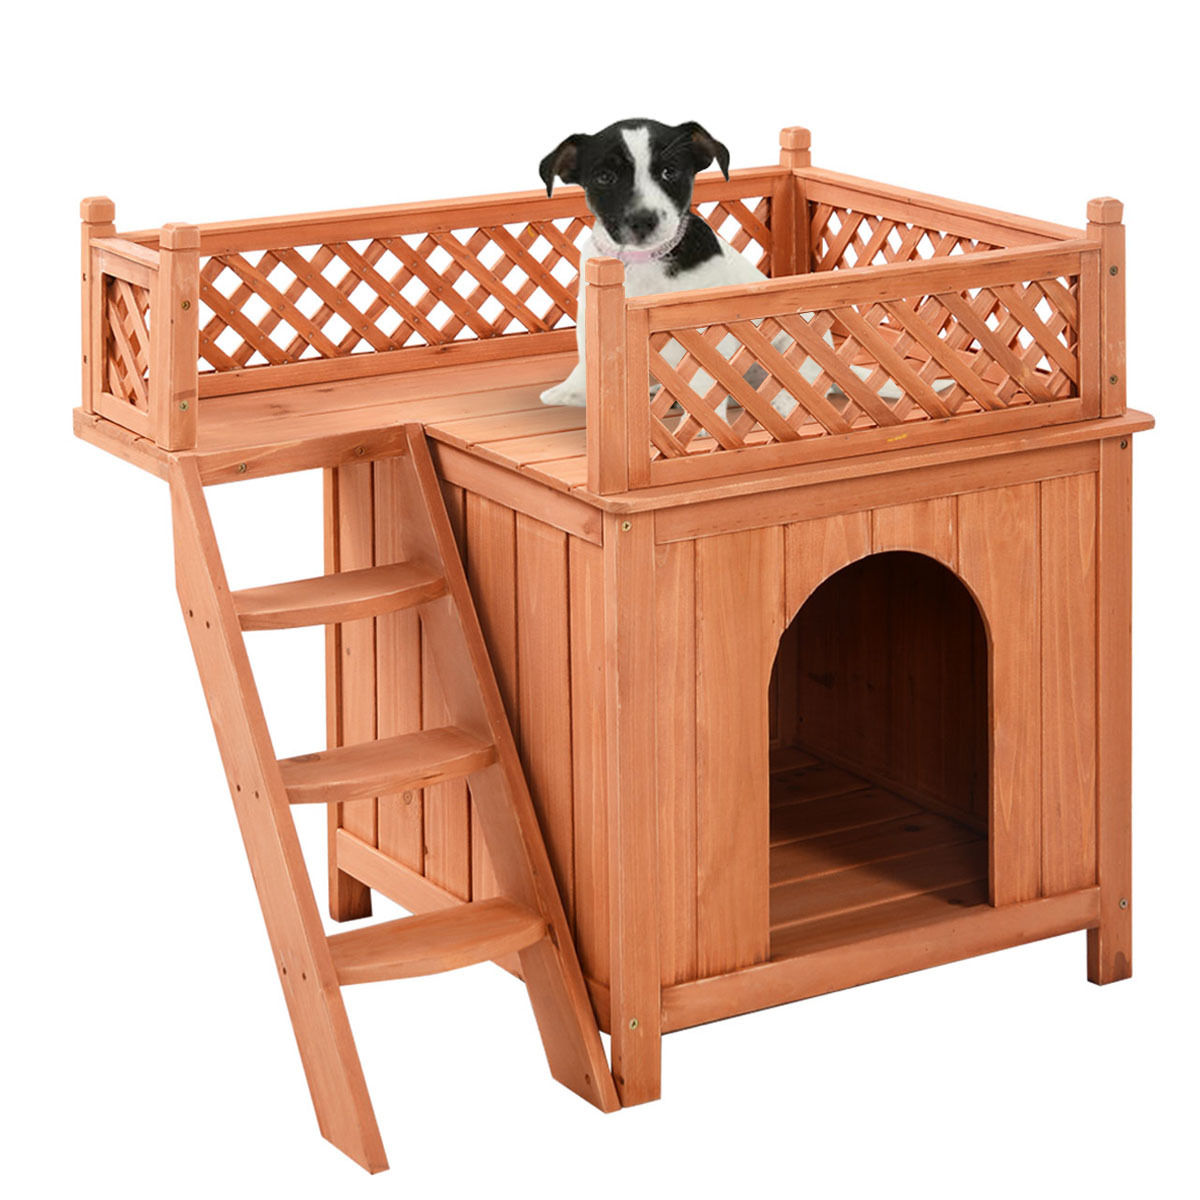 Costway Wooden Puppy Pet Dog House Wood Room In/outdoor Raised Roof Balcony Bed Shelter